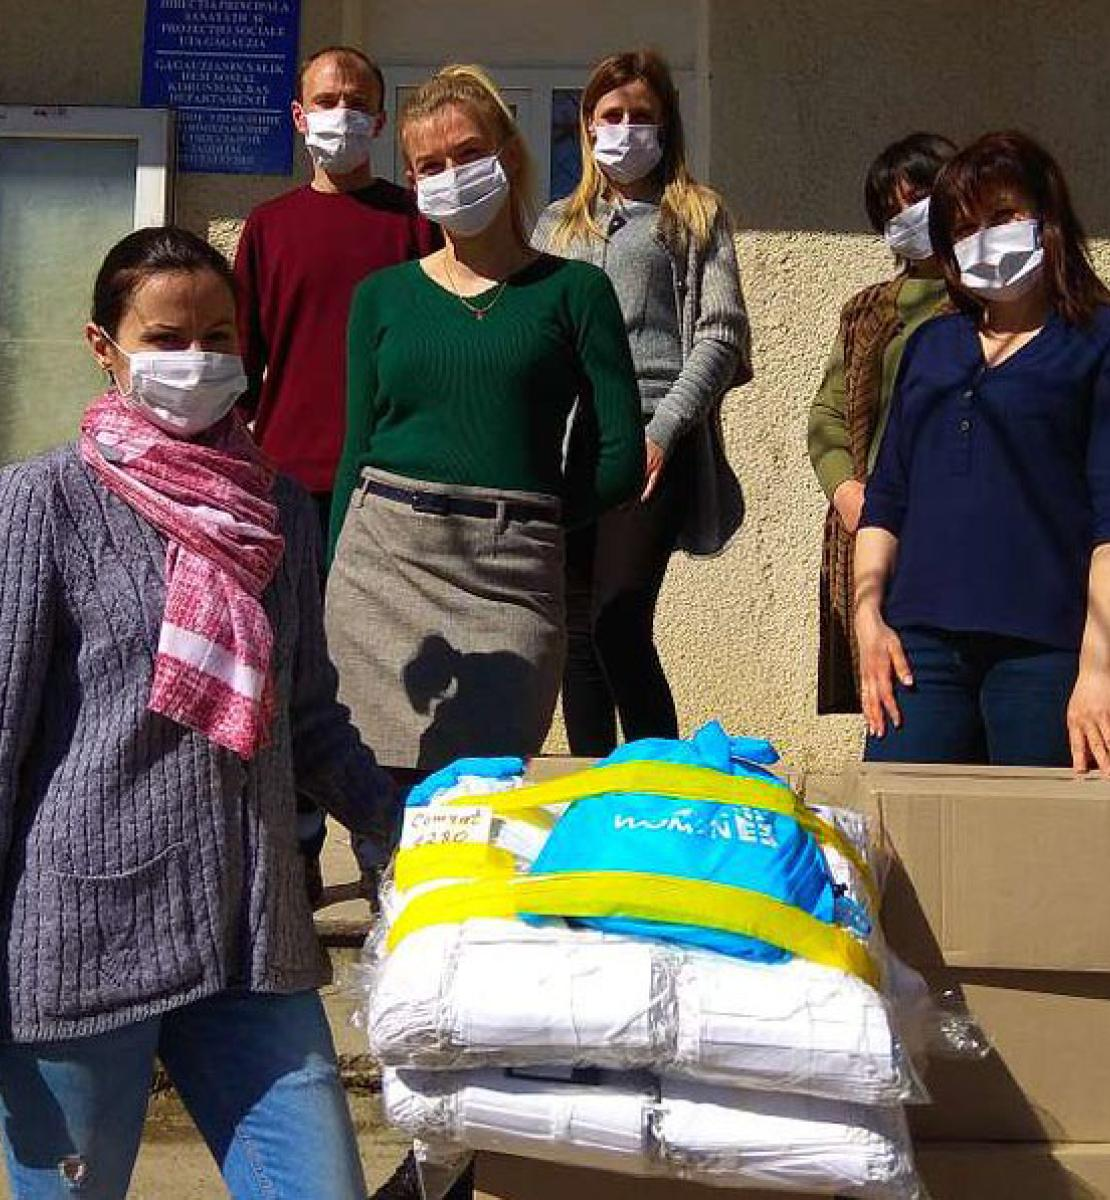 Essential workers and UN personnel stand outside by donated supplies as they wear face masks and social distance.